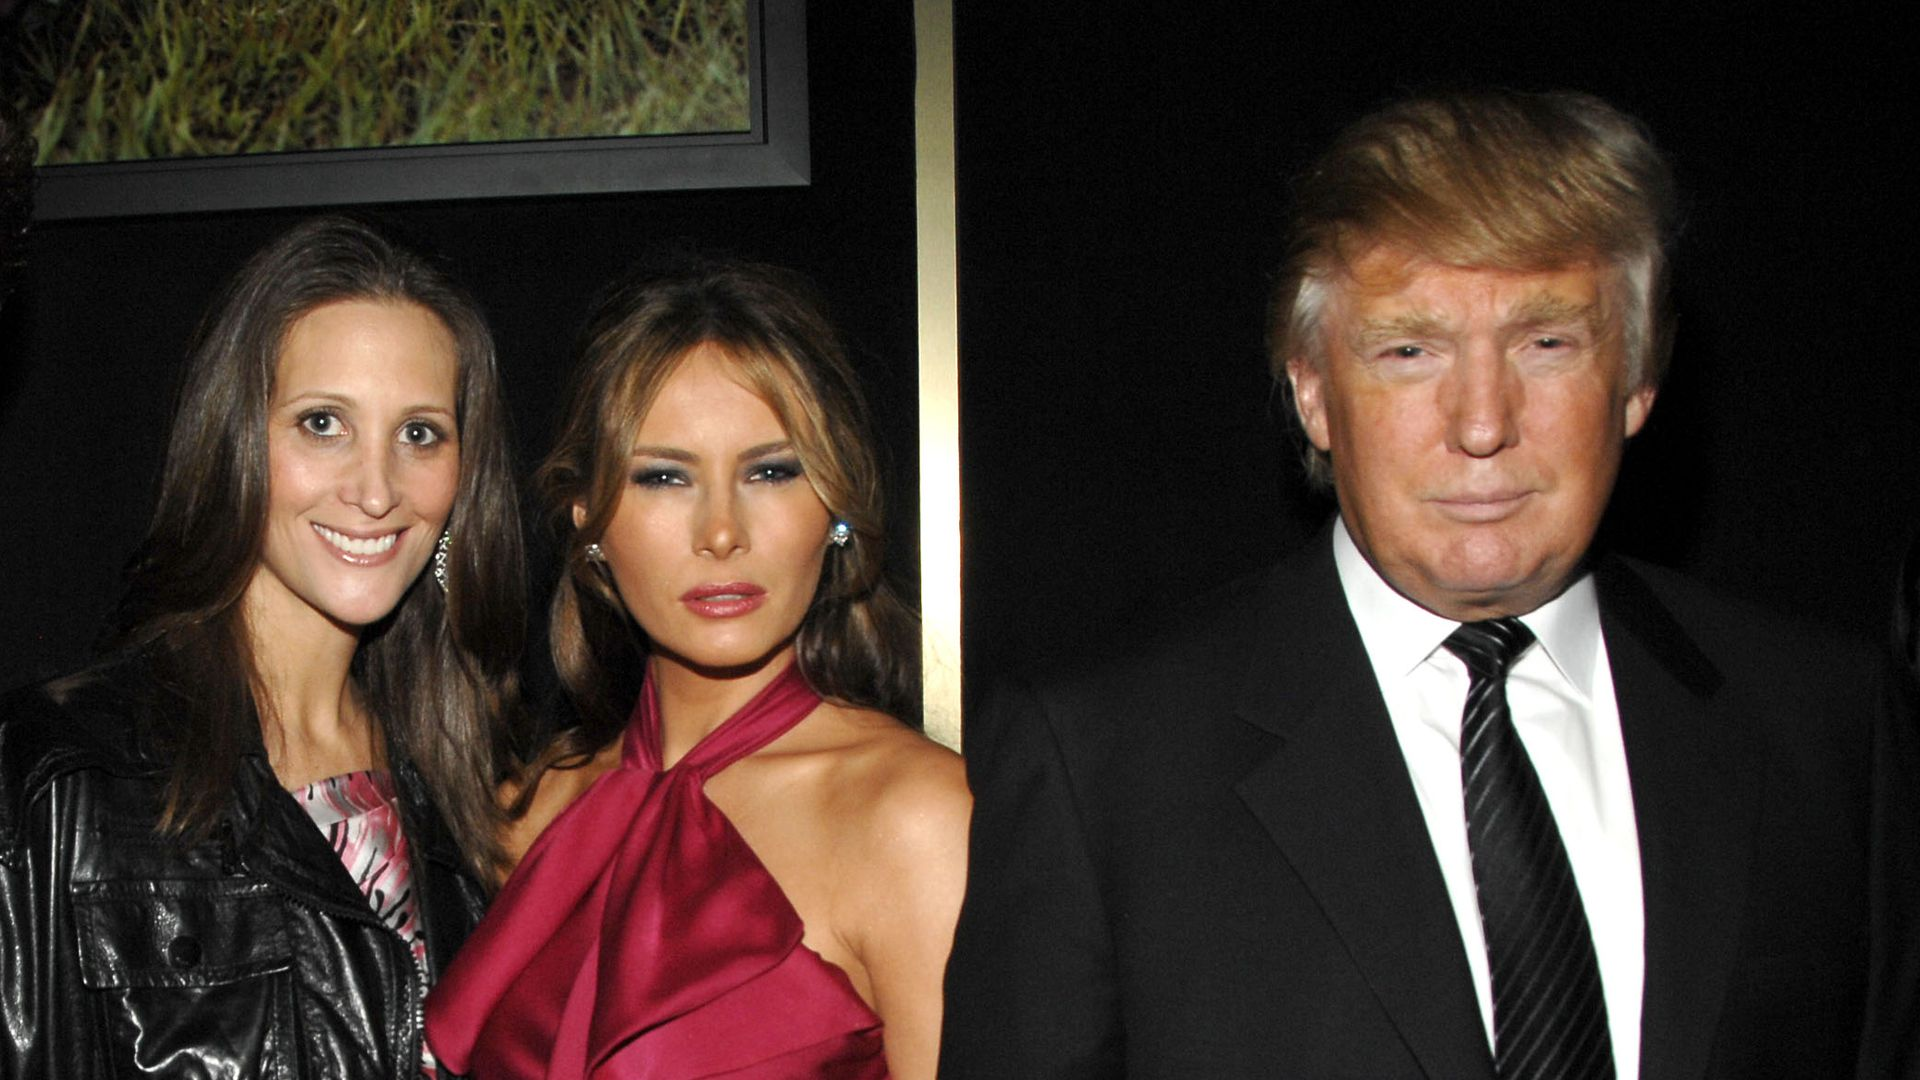 Stephanie Winston Wolkoff, Melania Trump and Donald Trump at a 2008 event.